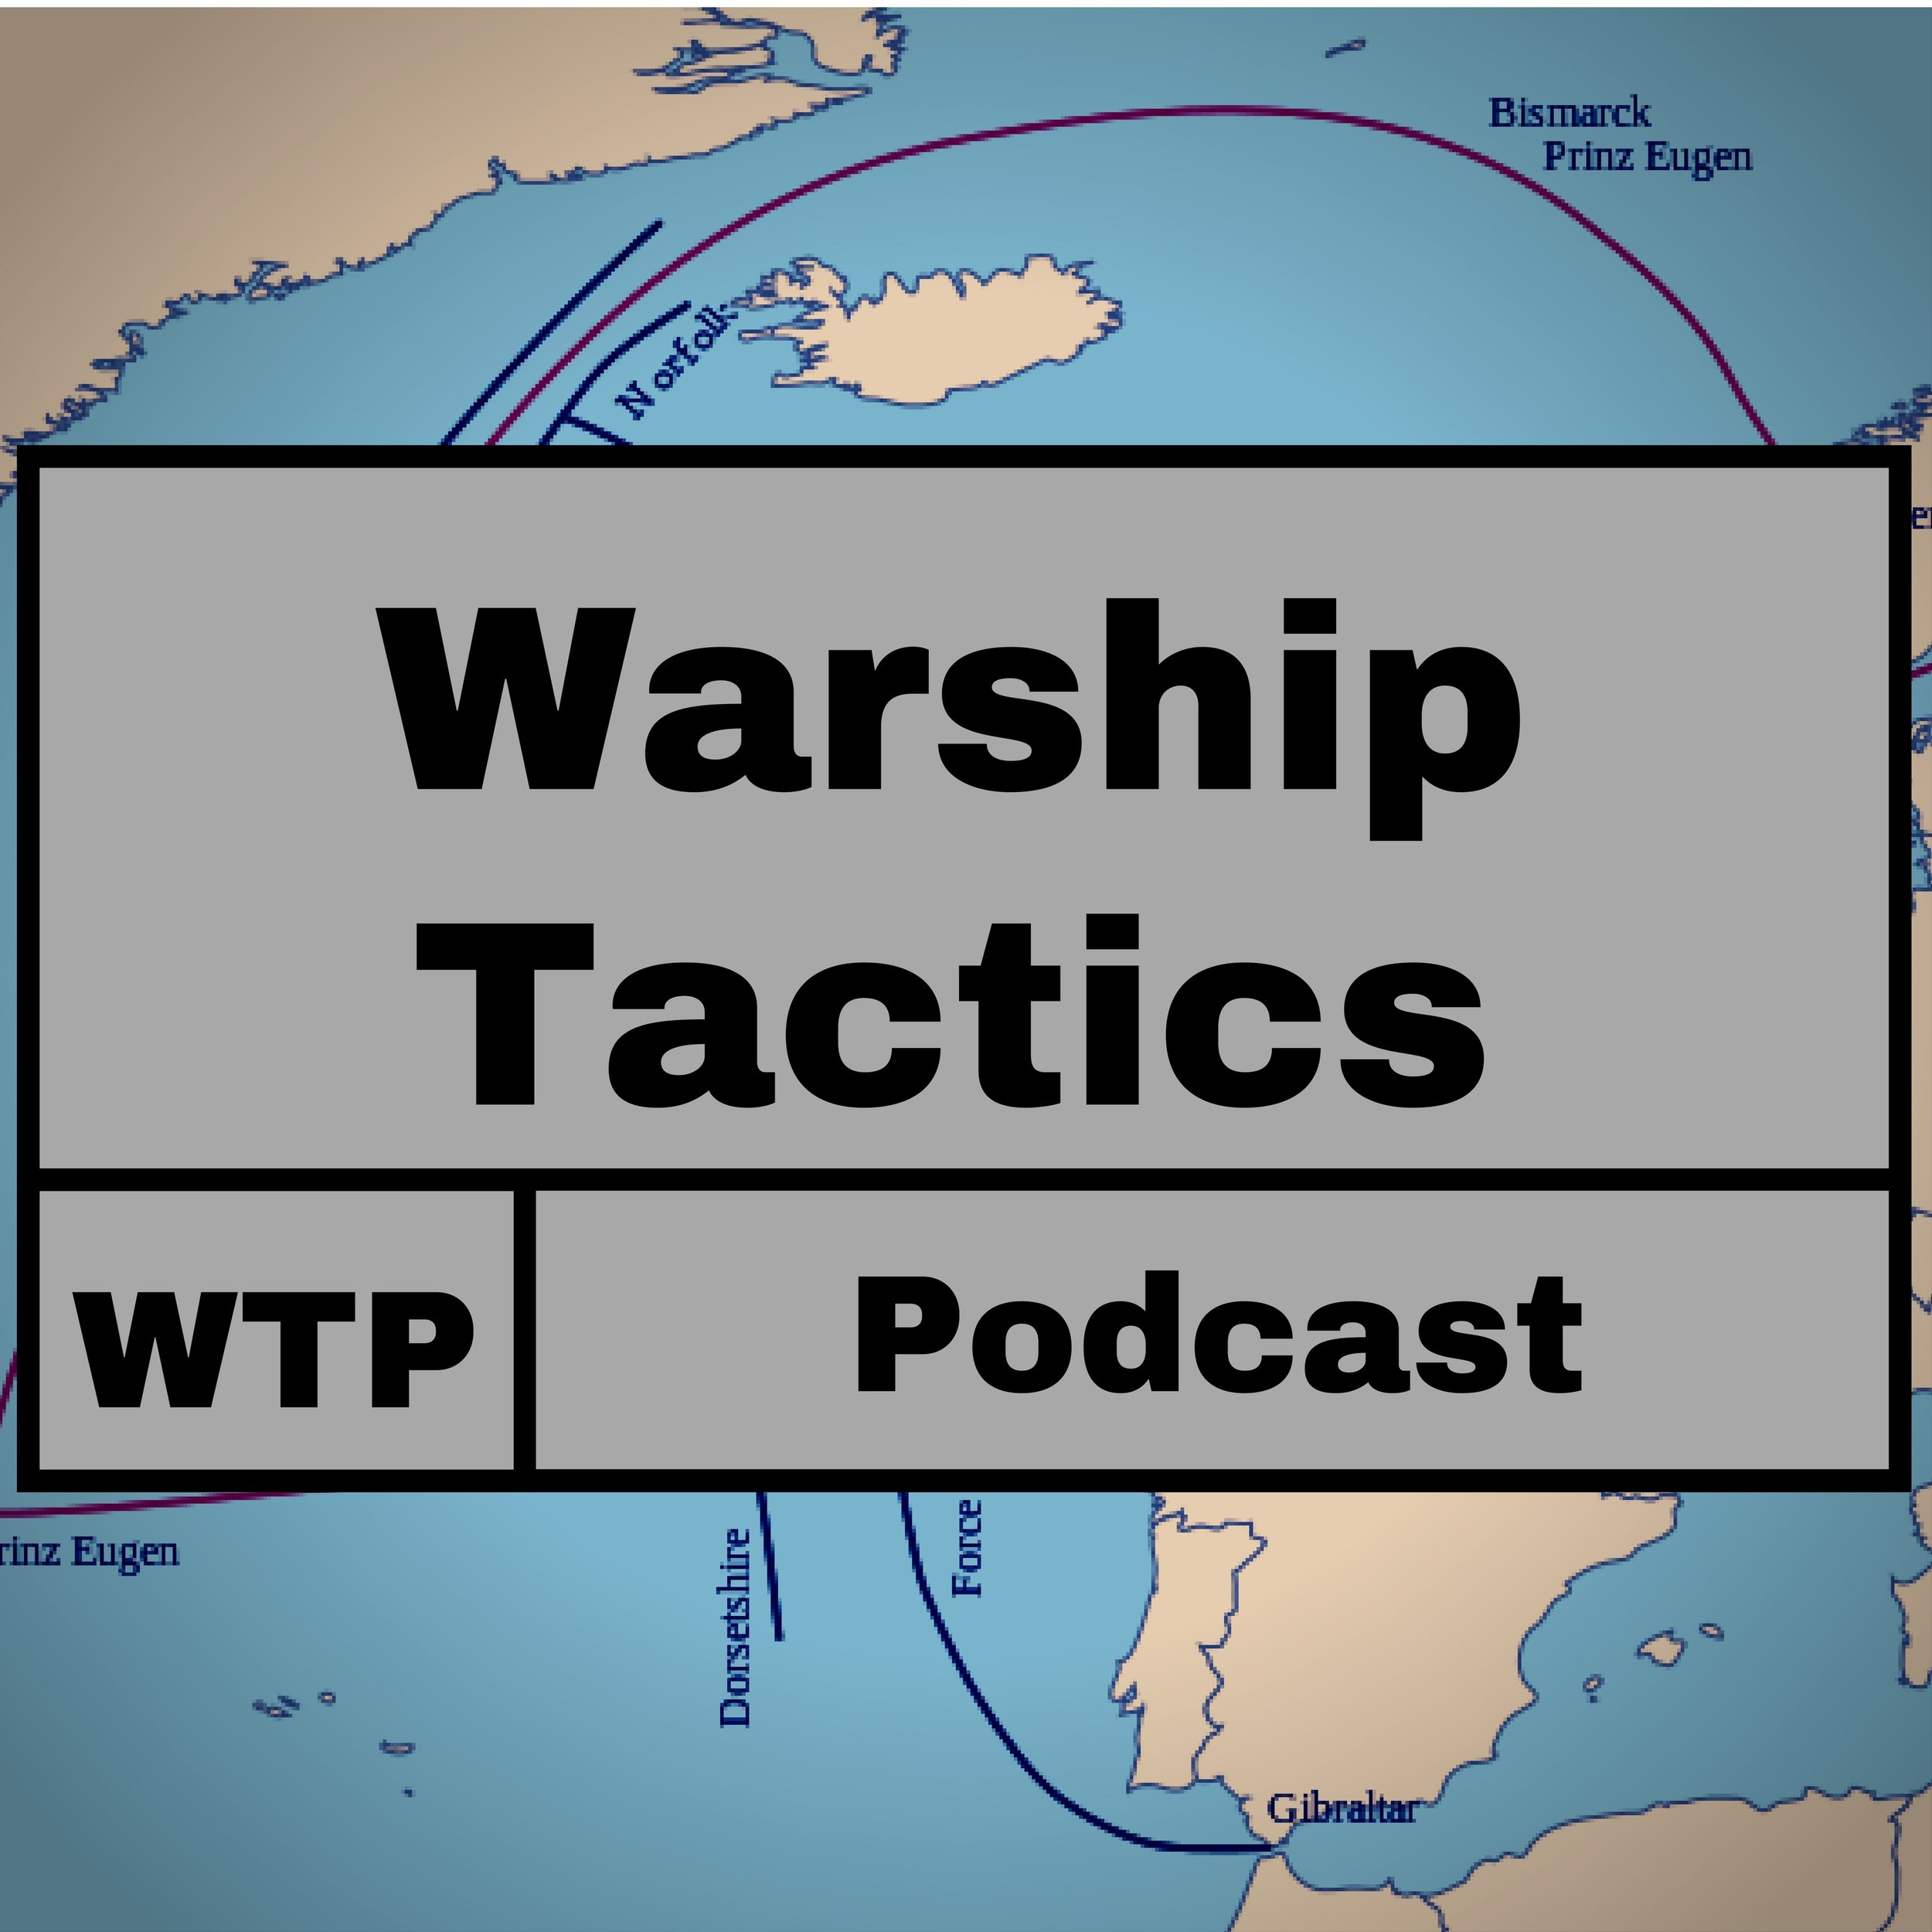 Warship Tactics Podcast Logo